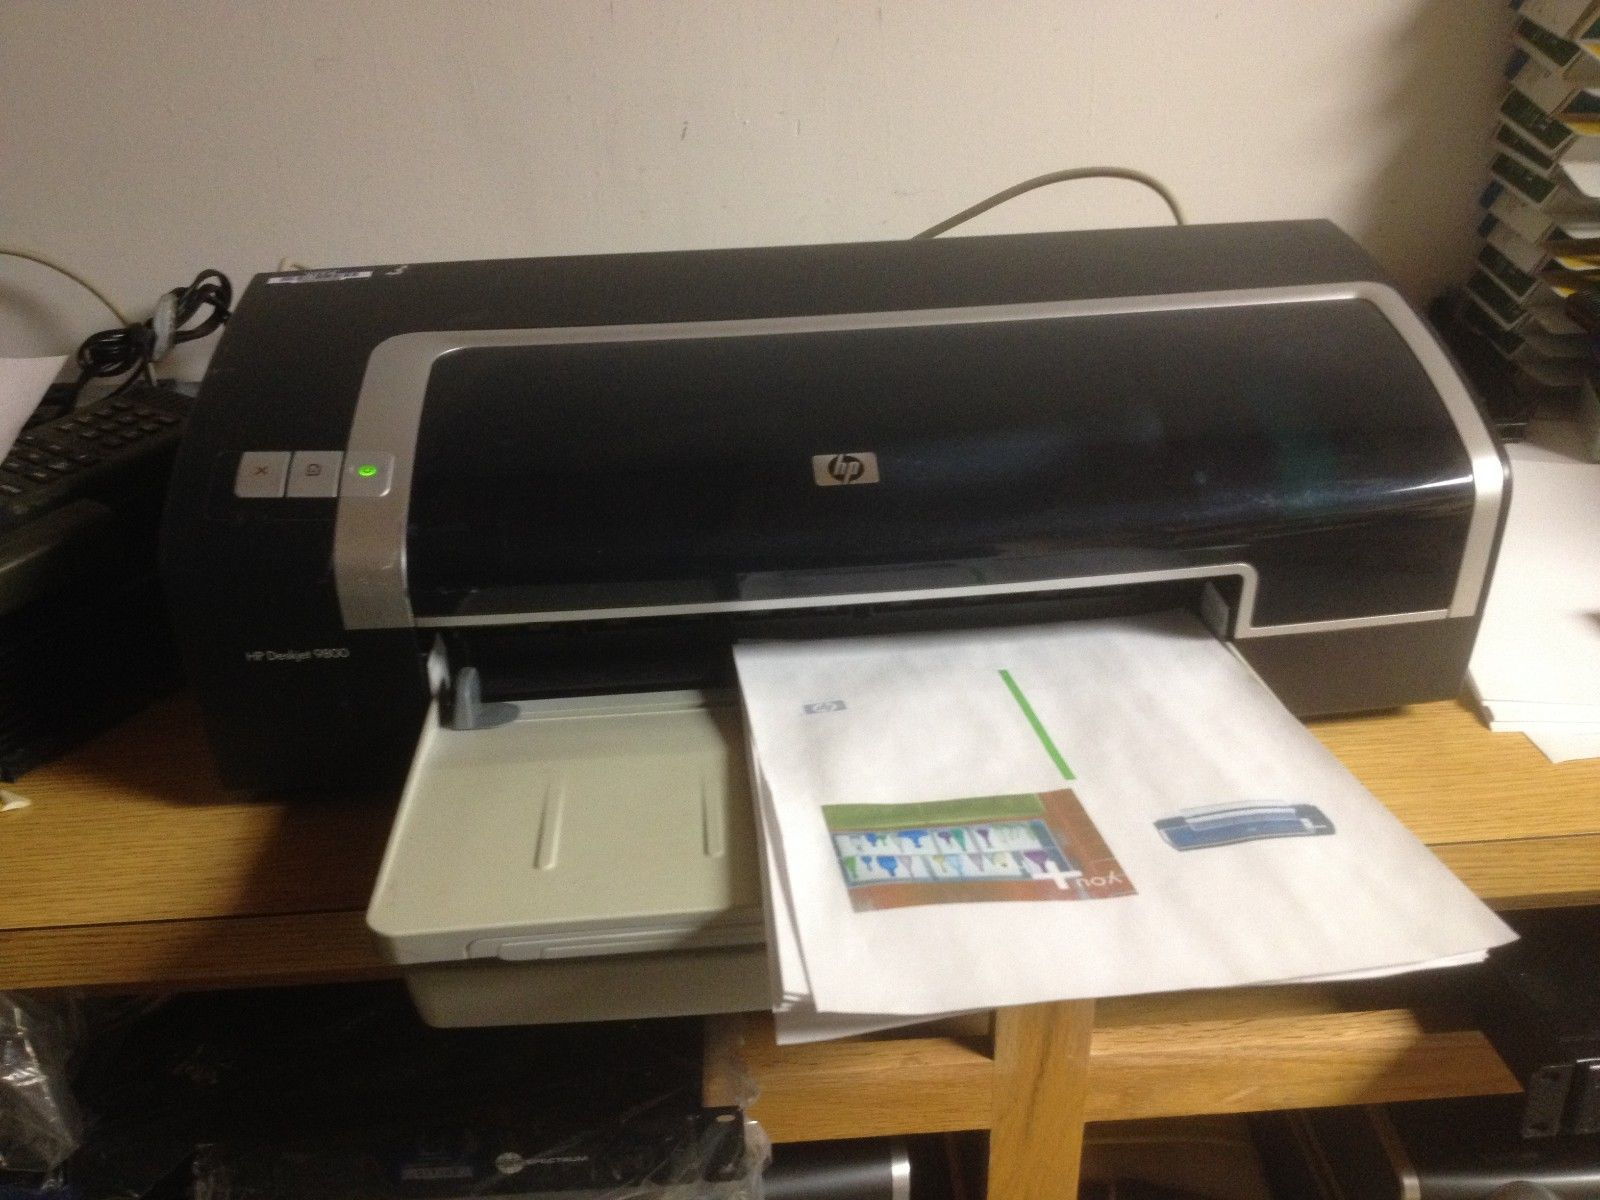 Hp hp color laser printers 11x17 - Hp Deskjet 9800 Printer Pc Only 1929 Pages Large Format Wide 13x19 11x17